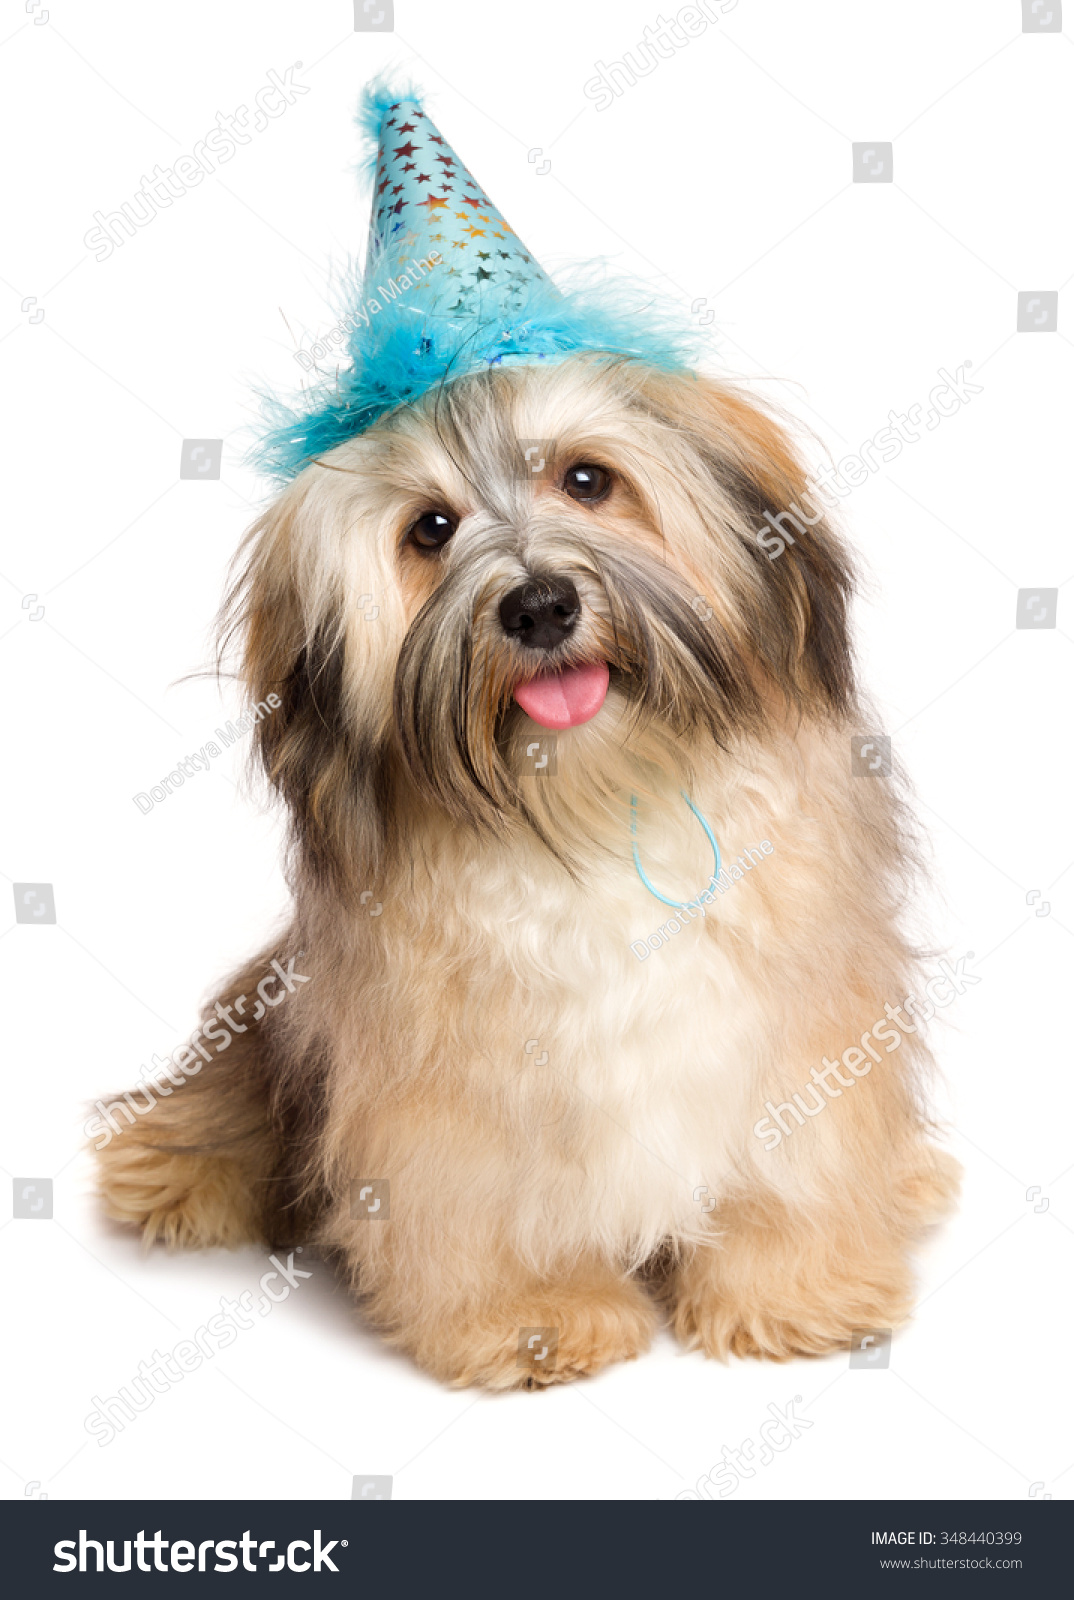 Cute happy Bichon Havanese puppy dog in a blue party hat is sitting and looking at camera isolated on white background